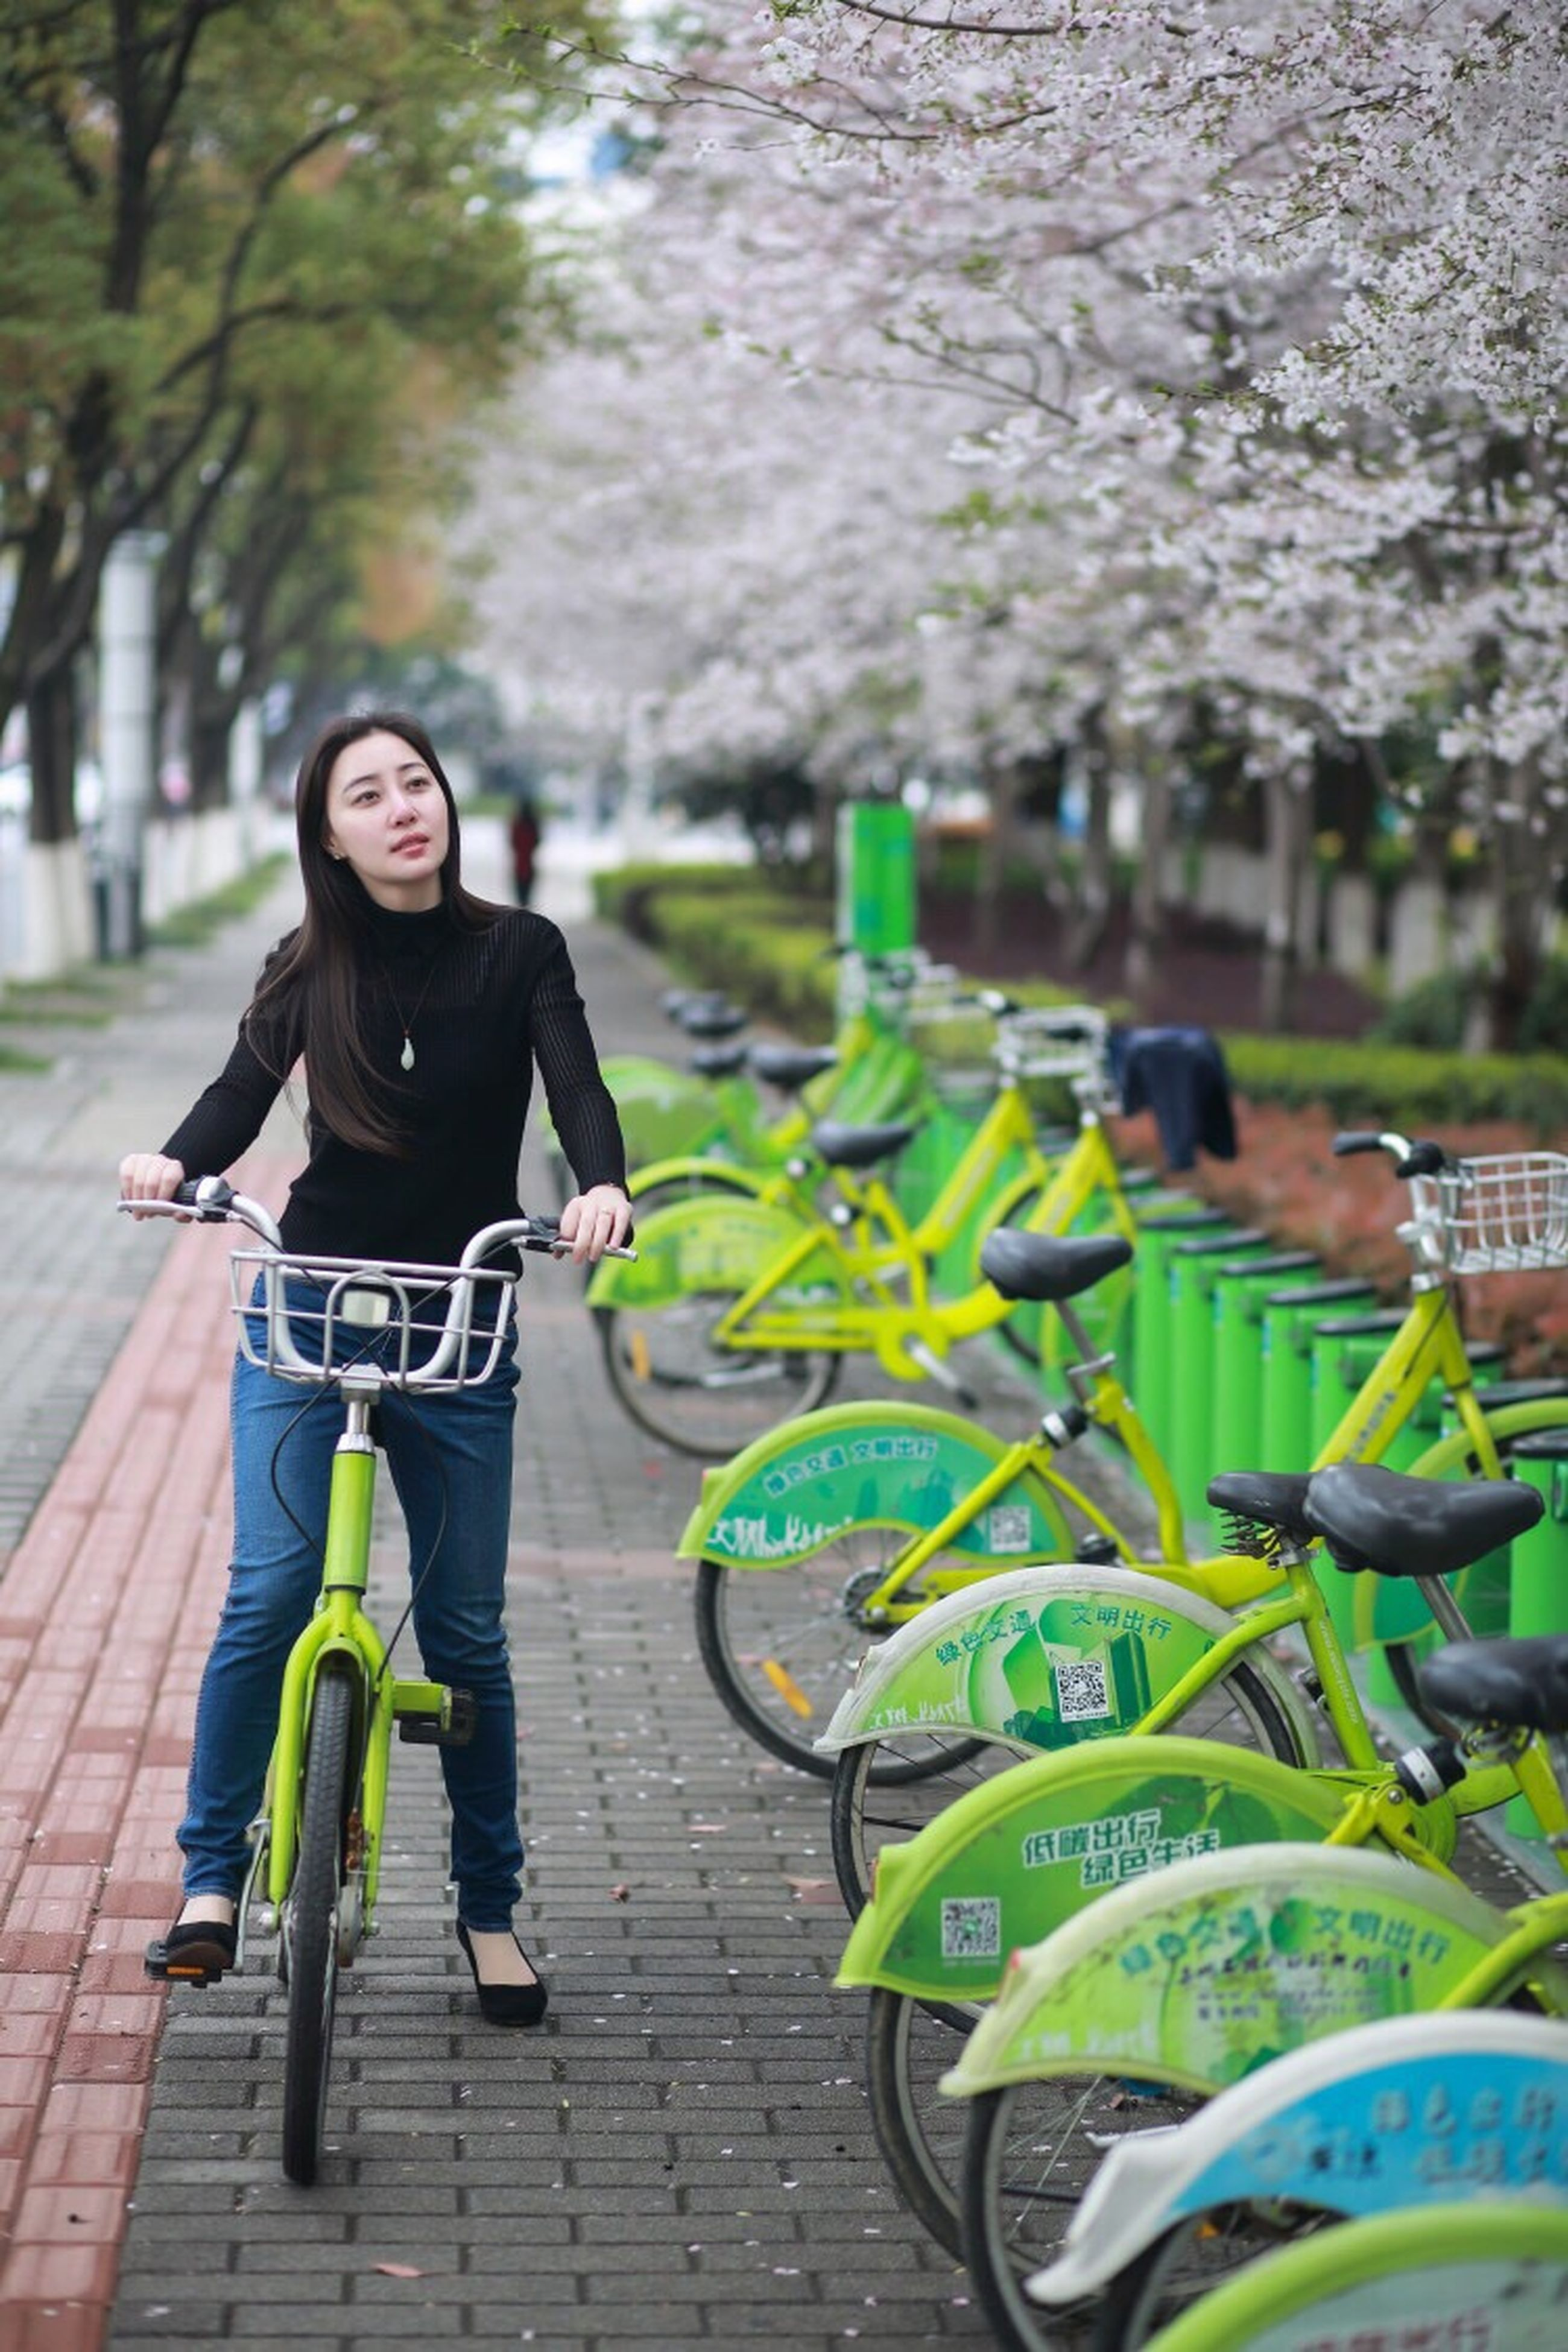 casual clothing, bicycle, one person, portrait, city, one woman only, full length, young adult, people, outdoors, adults only, one young woman only, adult, only women, young women, real people, women, happiness, cheerful, day, nature